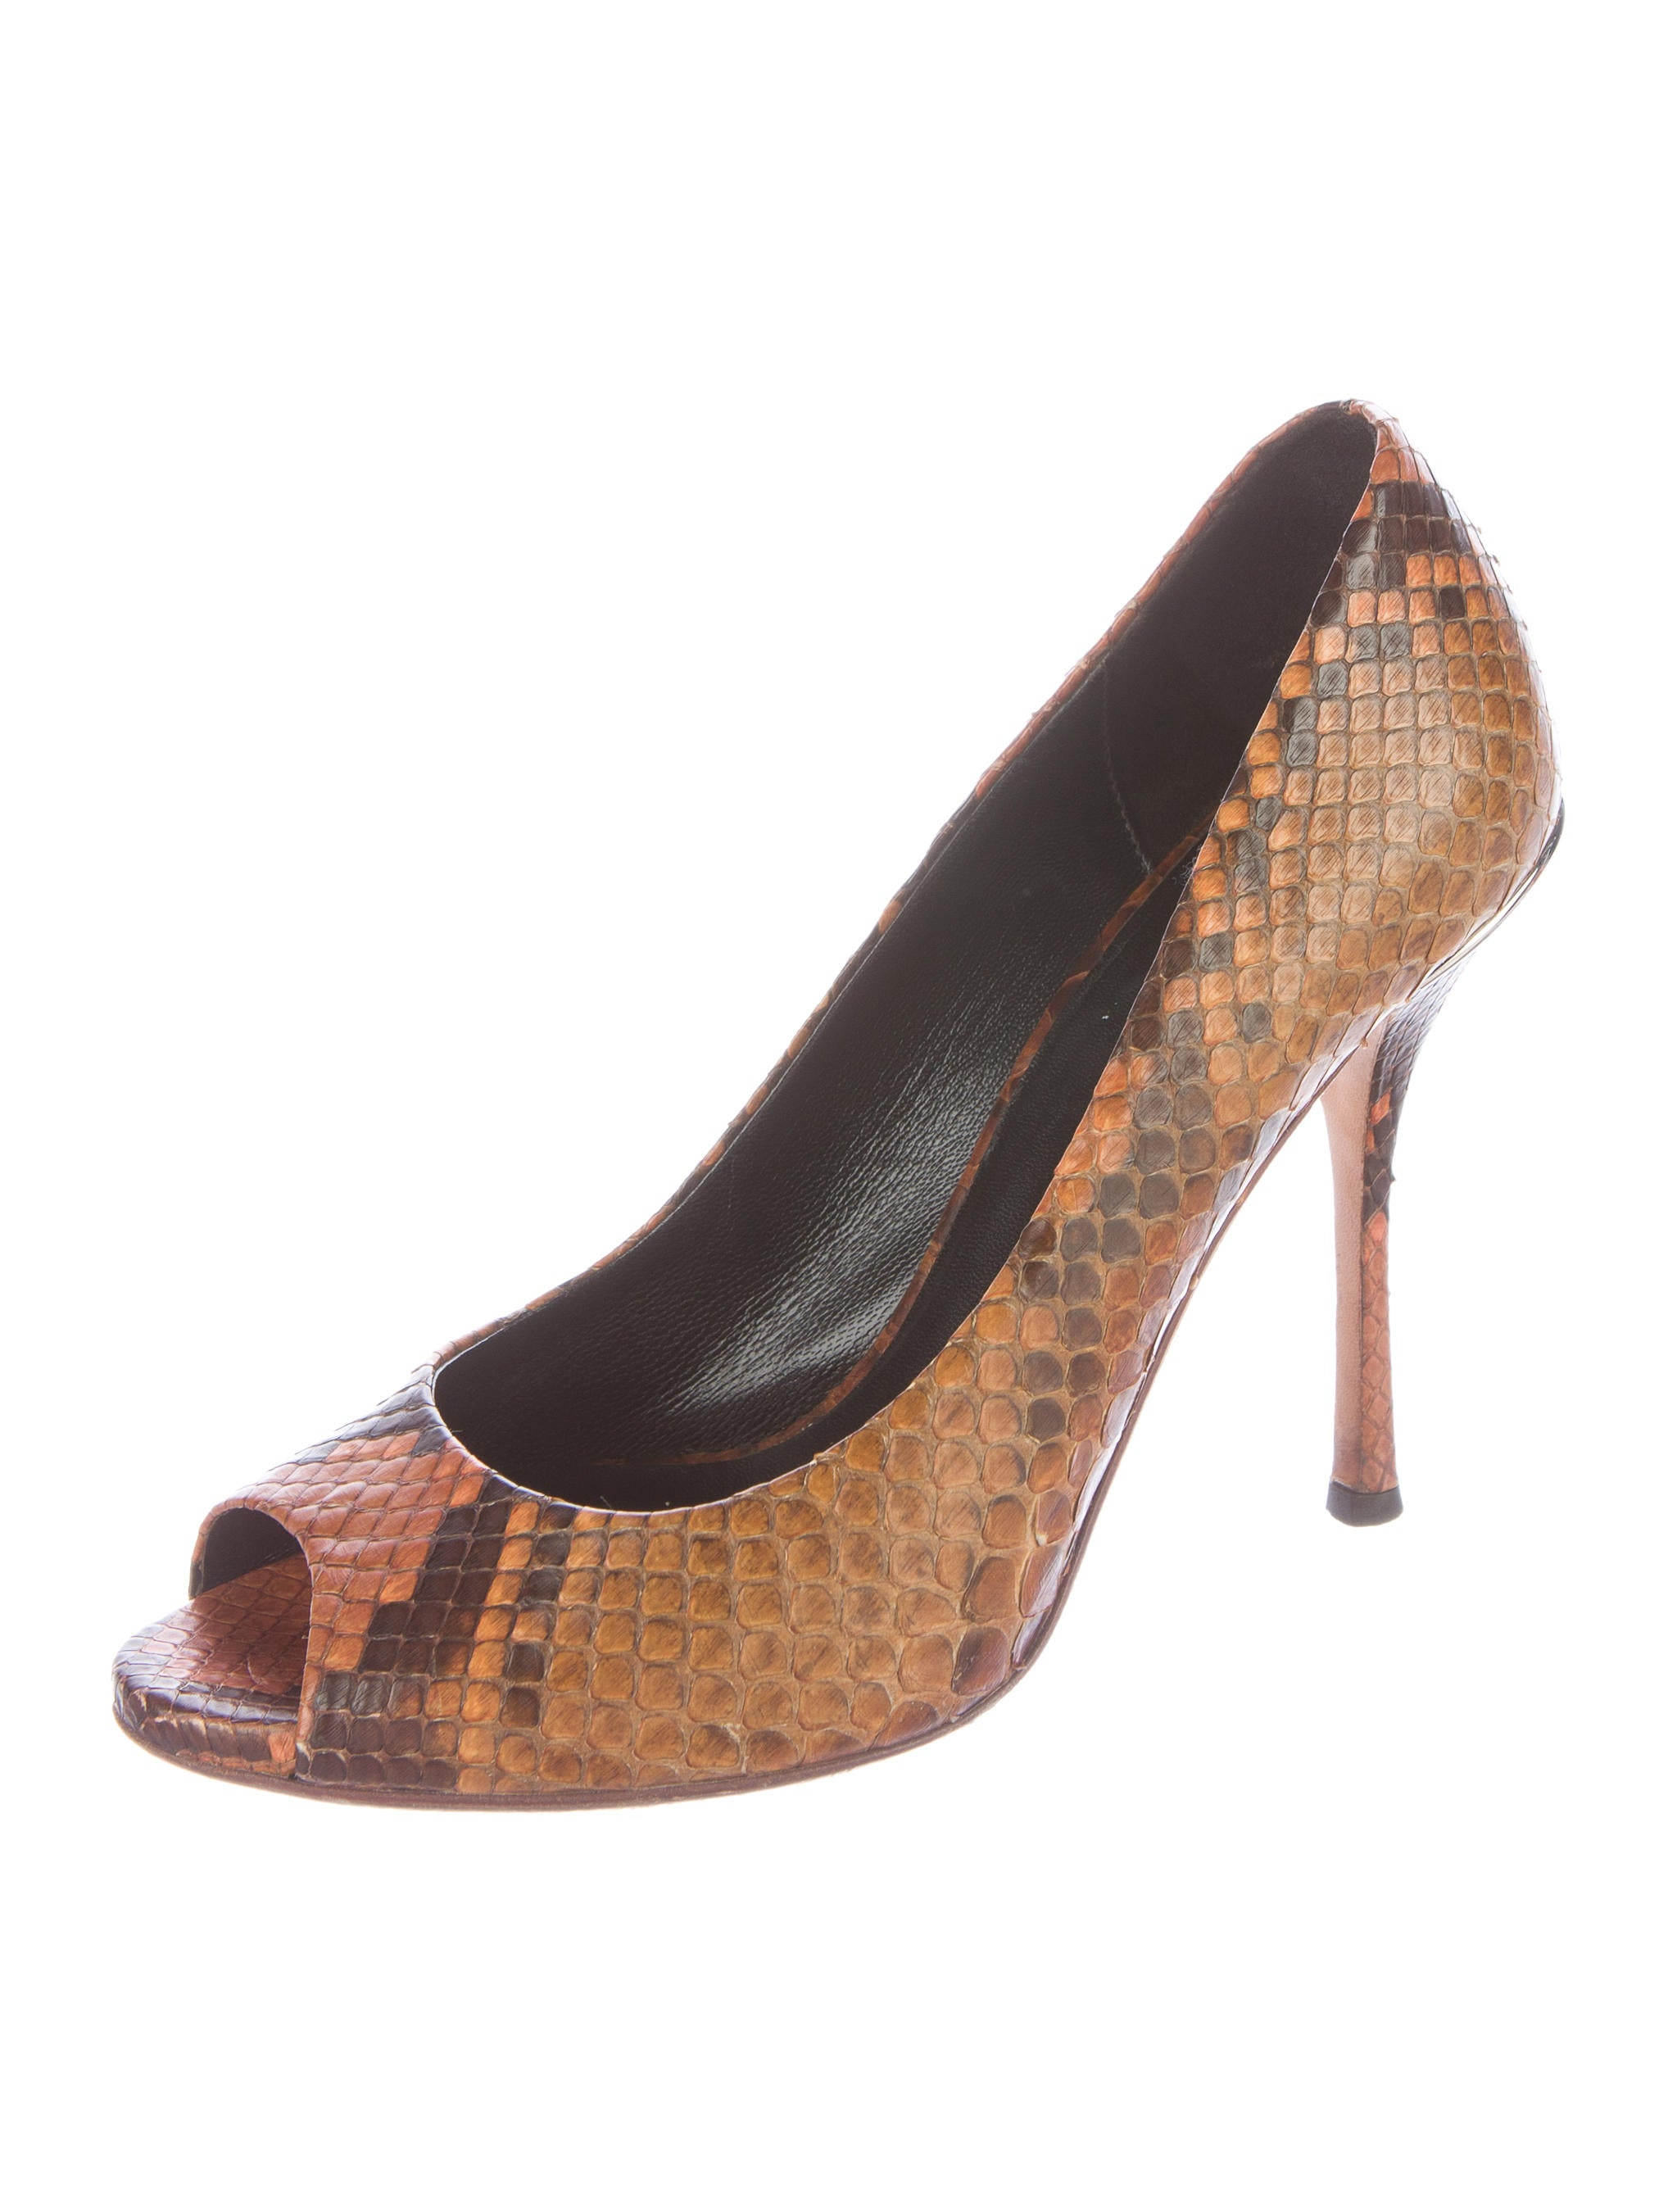 Shop snakeskin pump shoes at Neiman Marcus, where you will find free shipping on the latest in fashion from top designers.